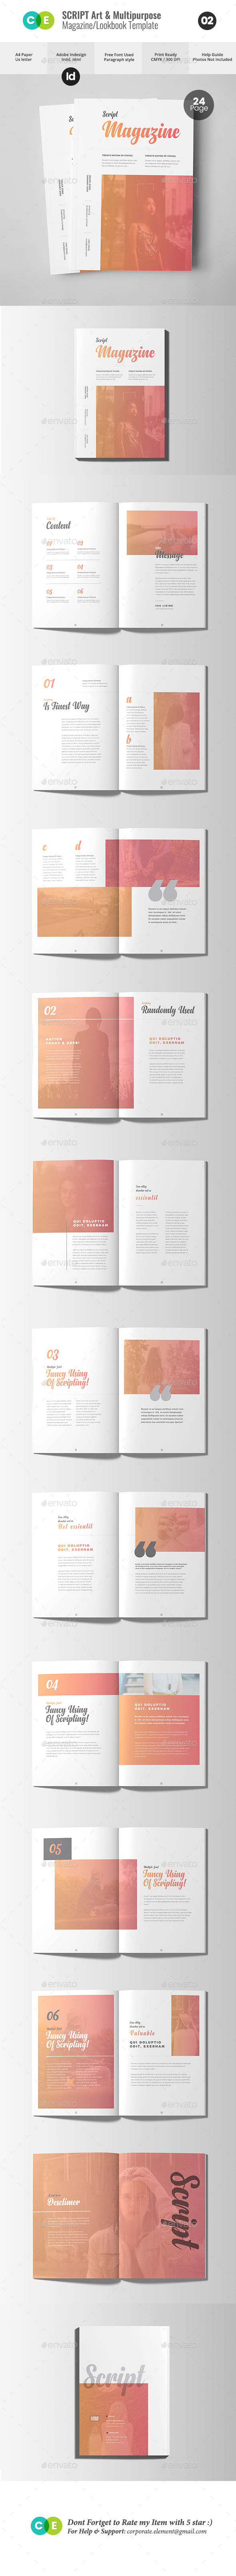 SCRIPT | The Magazine Lookbook V02 - Magazines Print Templates